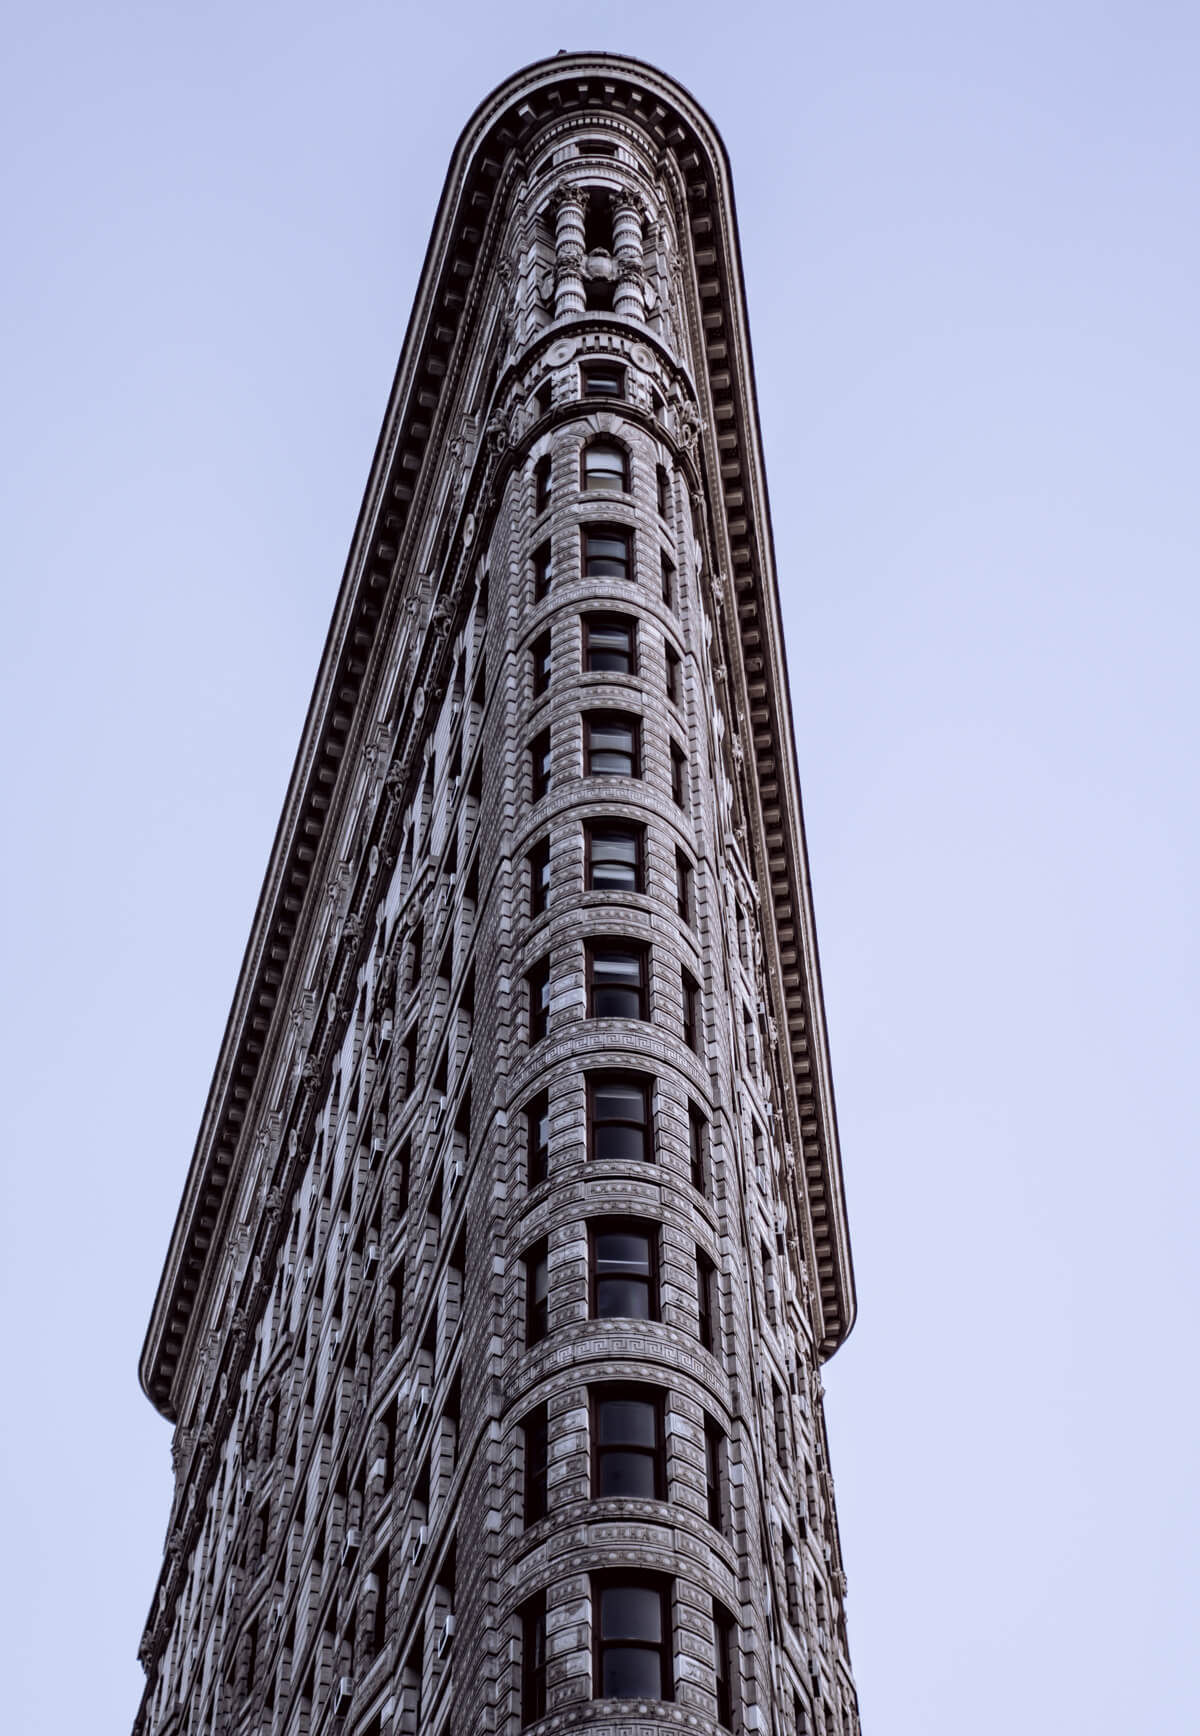 What to Do in New York City: Flatiron Building